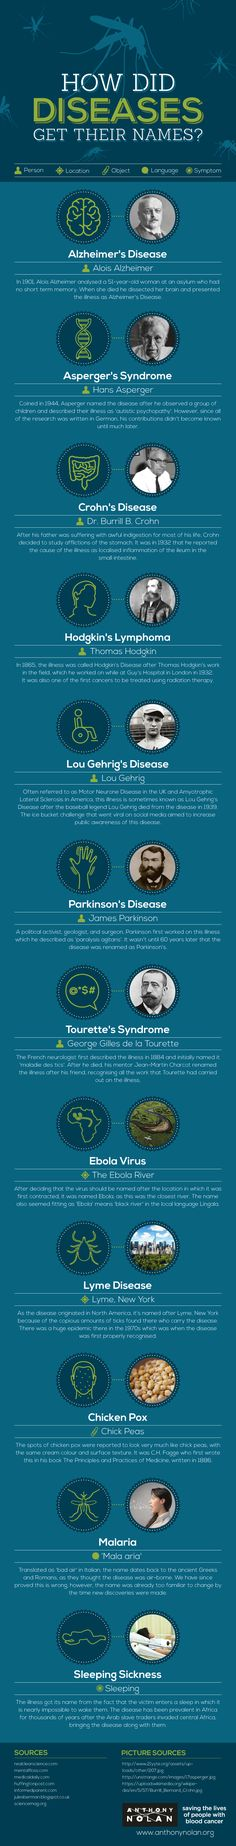 How (Some Well Known) Diseases Got Their Names